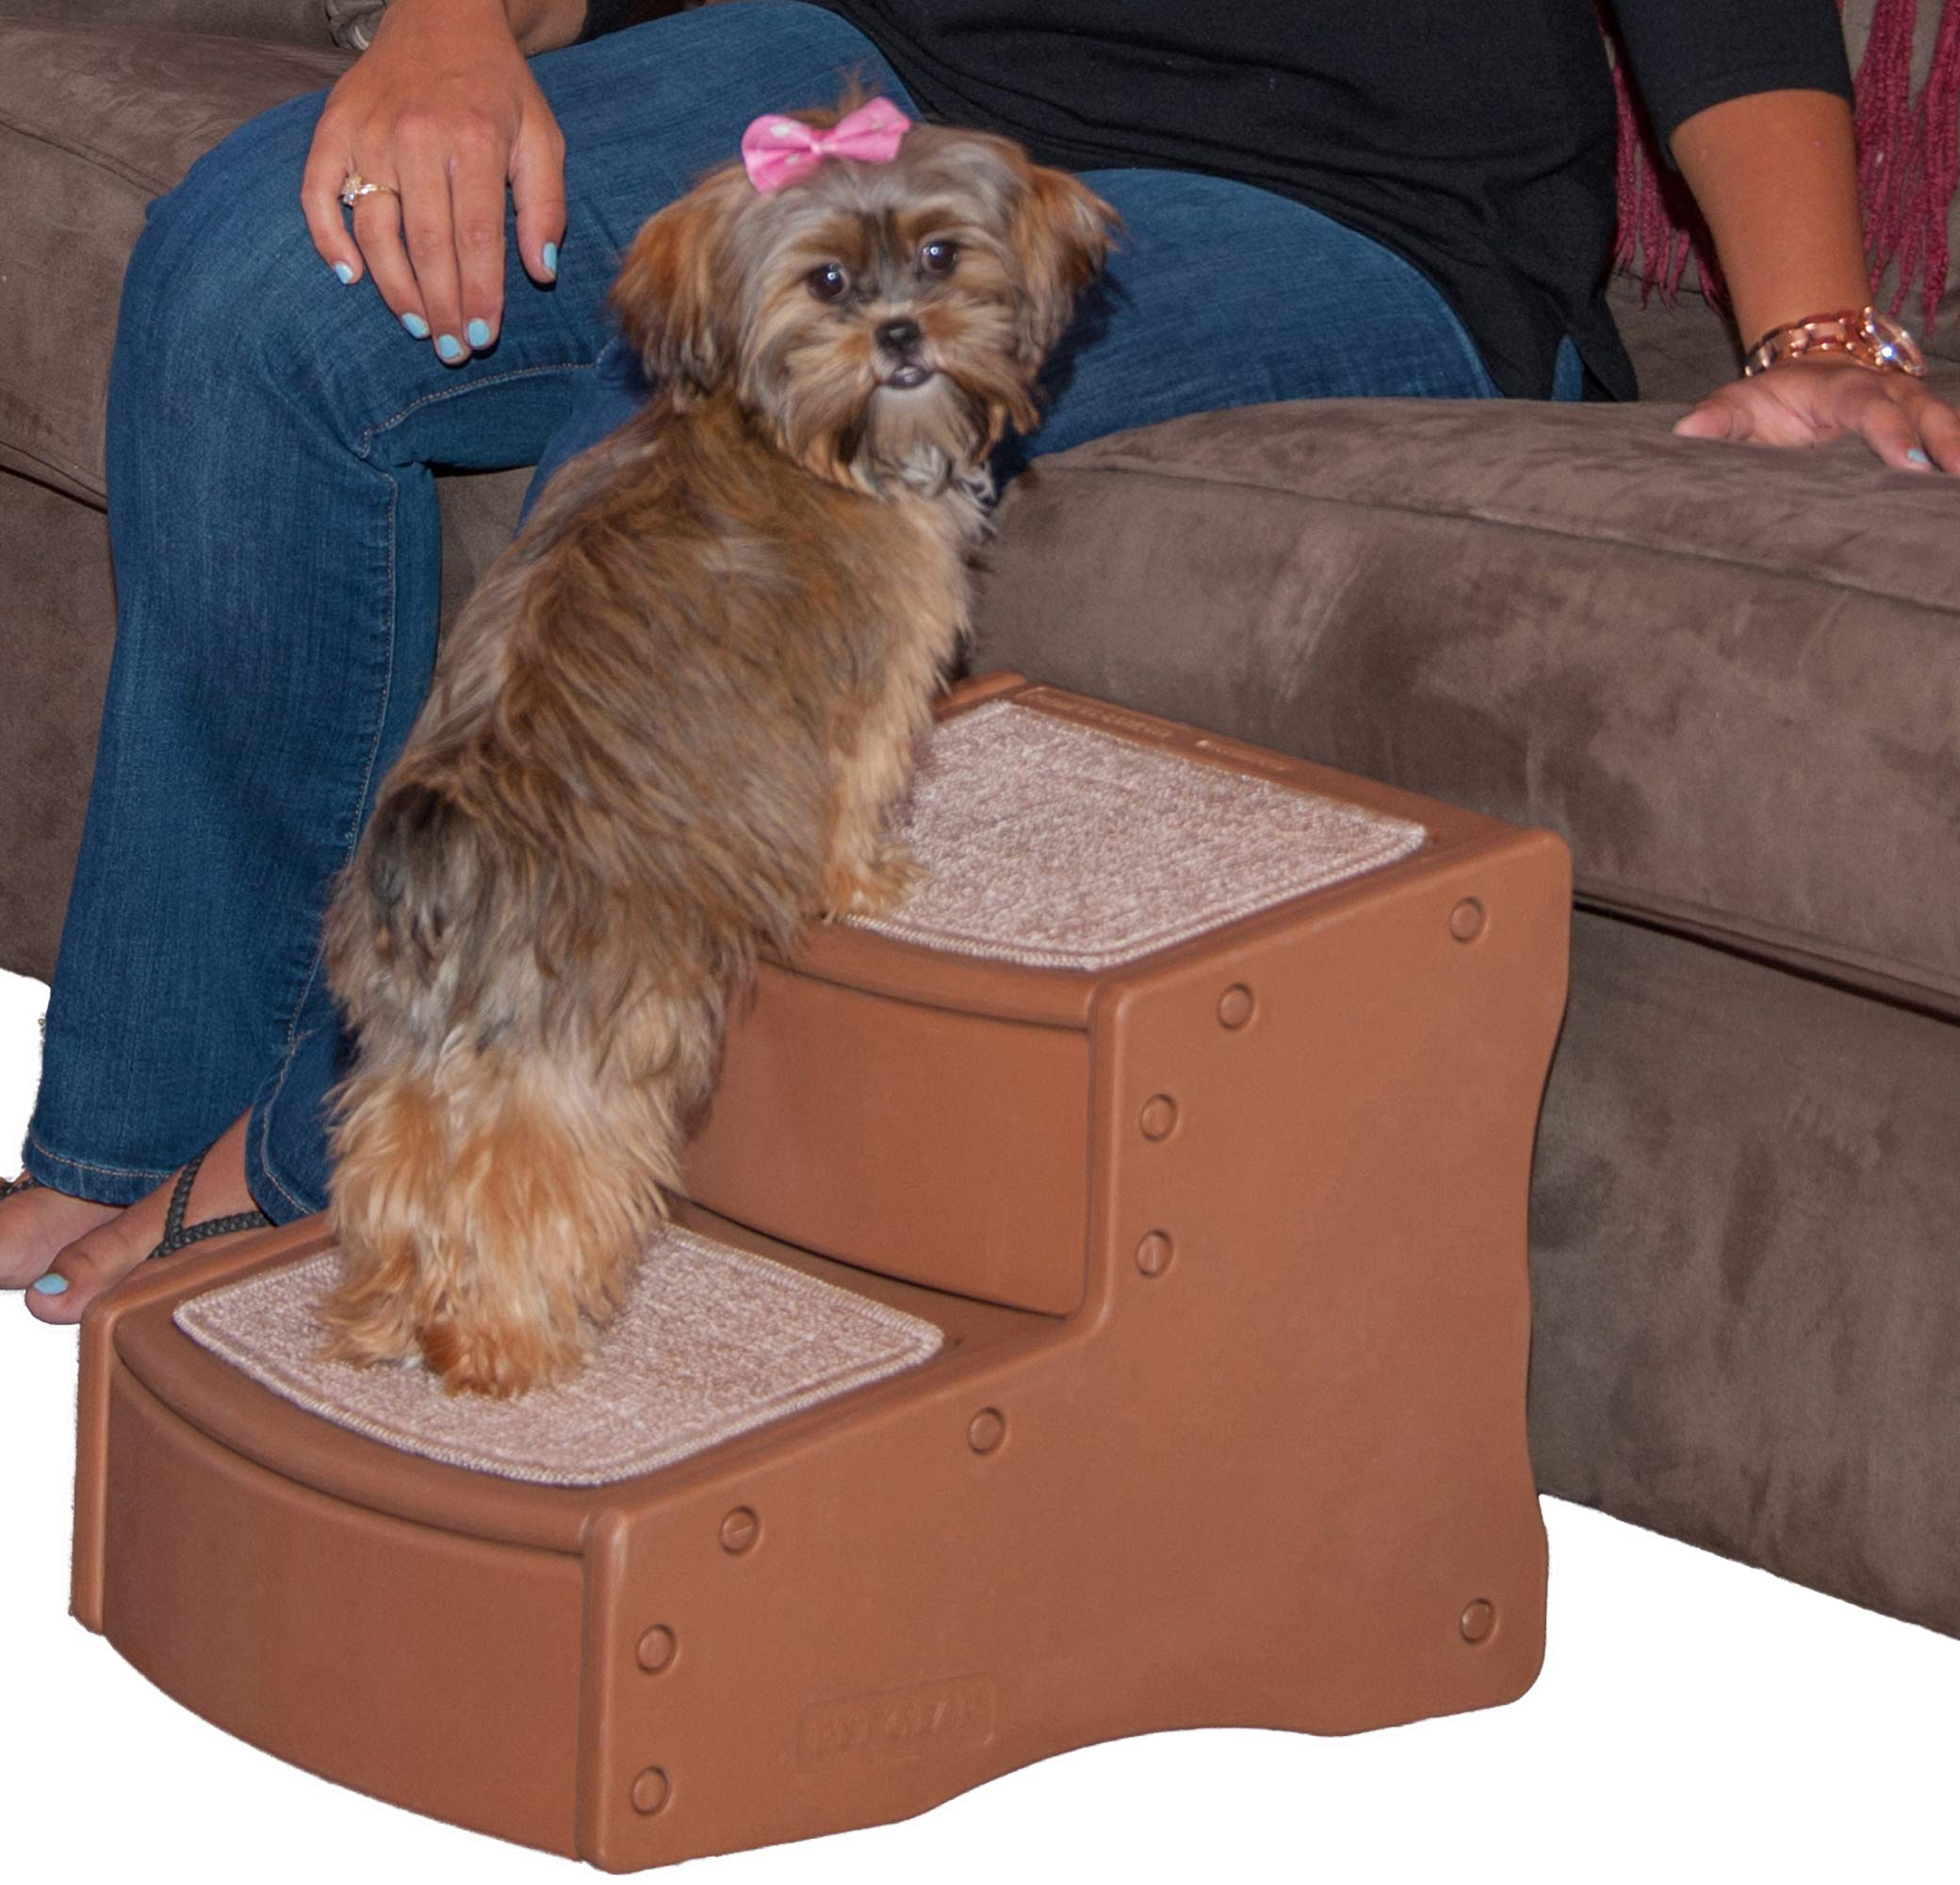 Pet Gear Easy Step II Pet Stairs, 2 Step for Cats/Dogs up to 75-pounds, Portable, Removable Washable Carpet Tread, Light Cocoa by Pet Gear